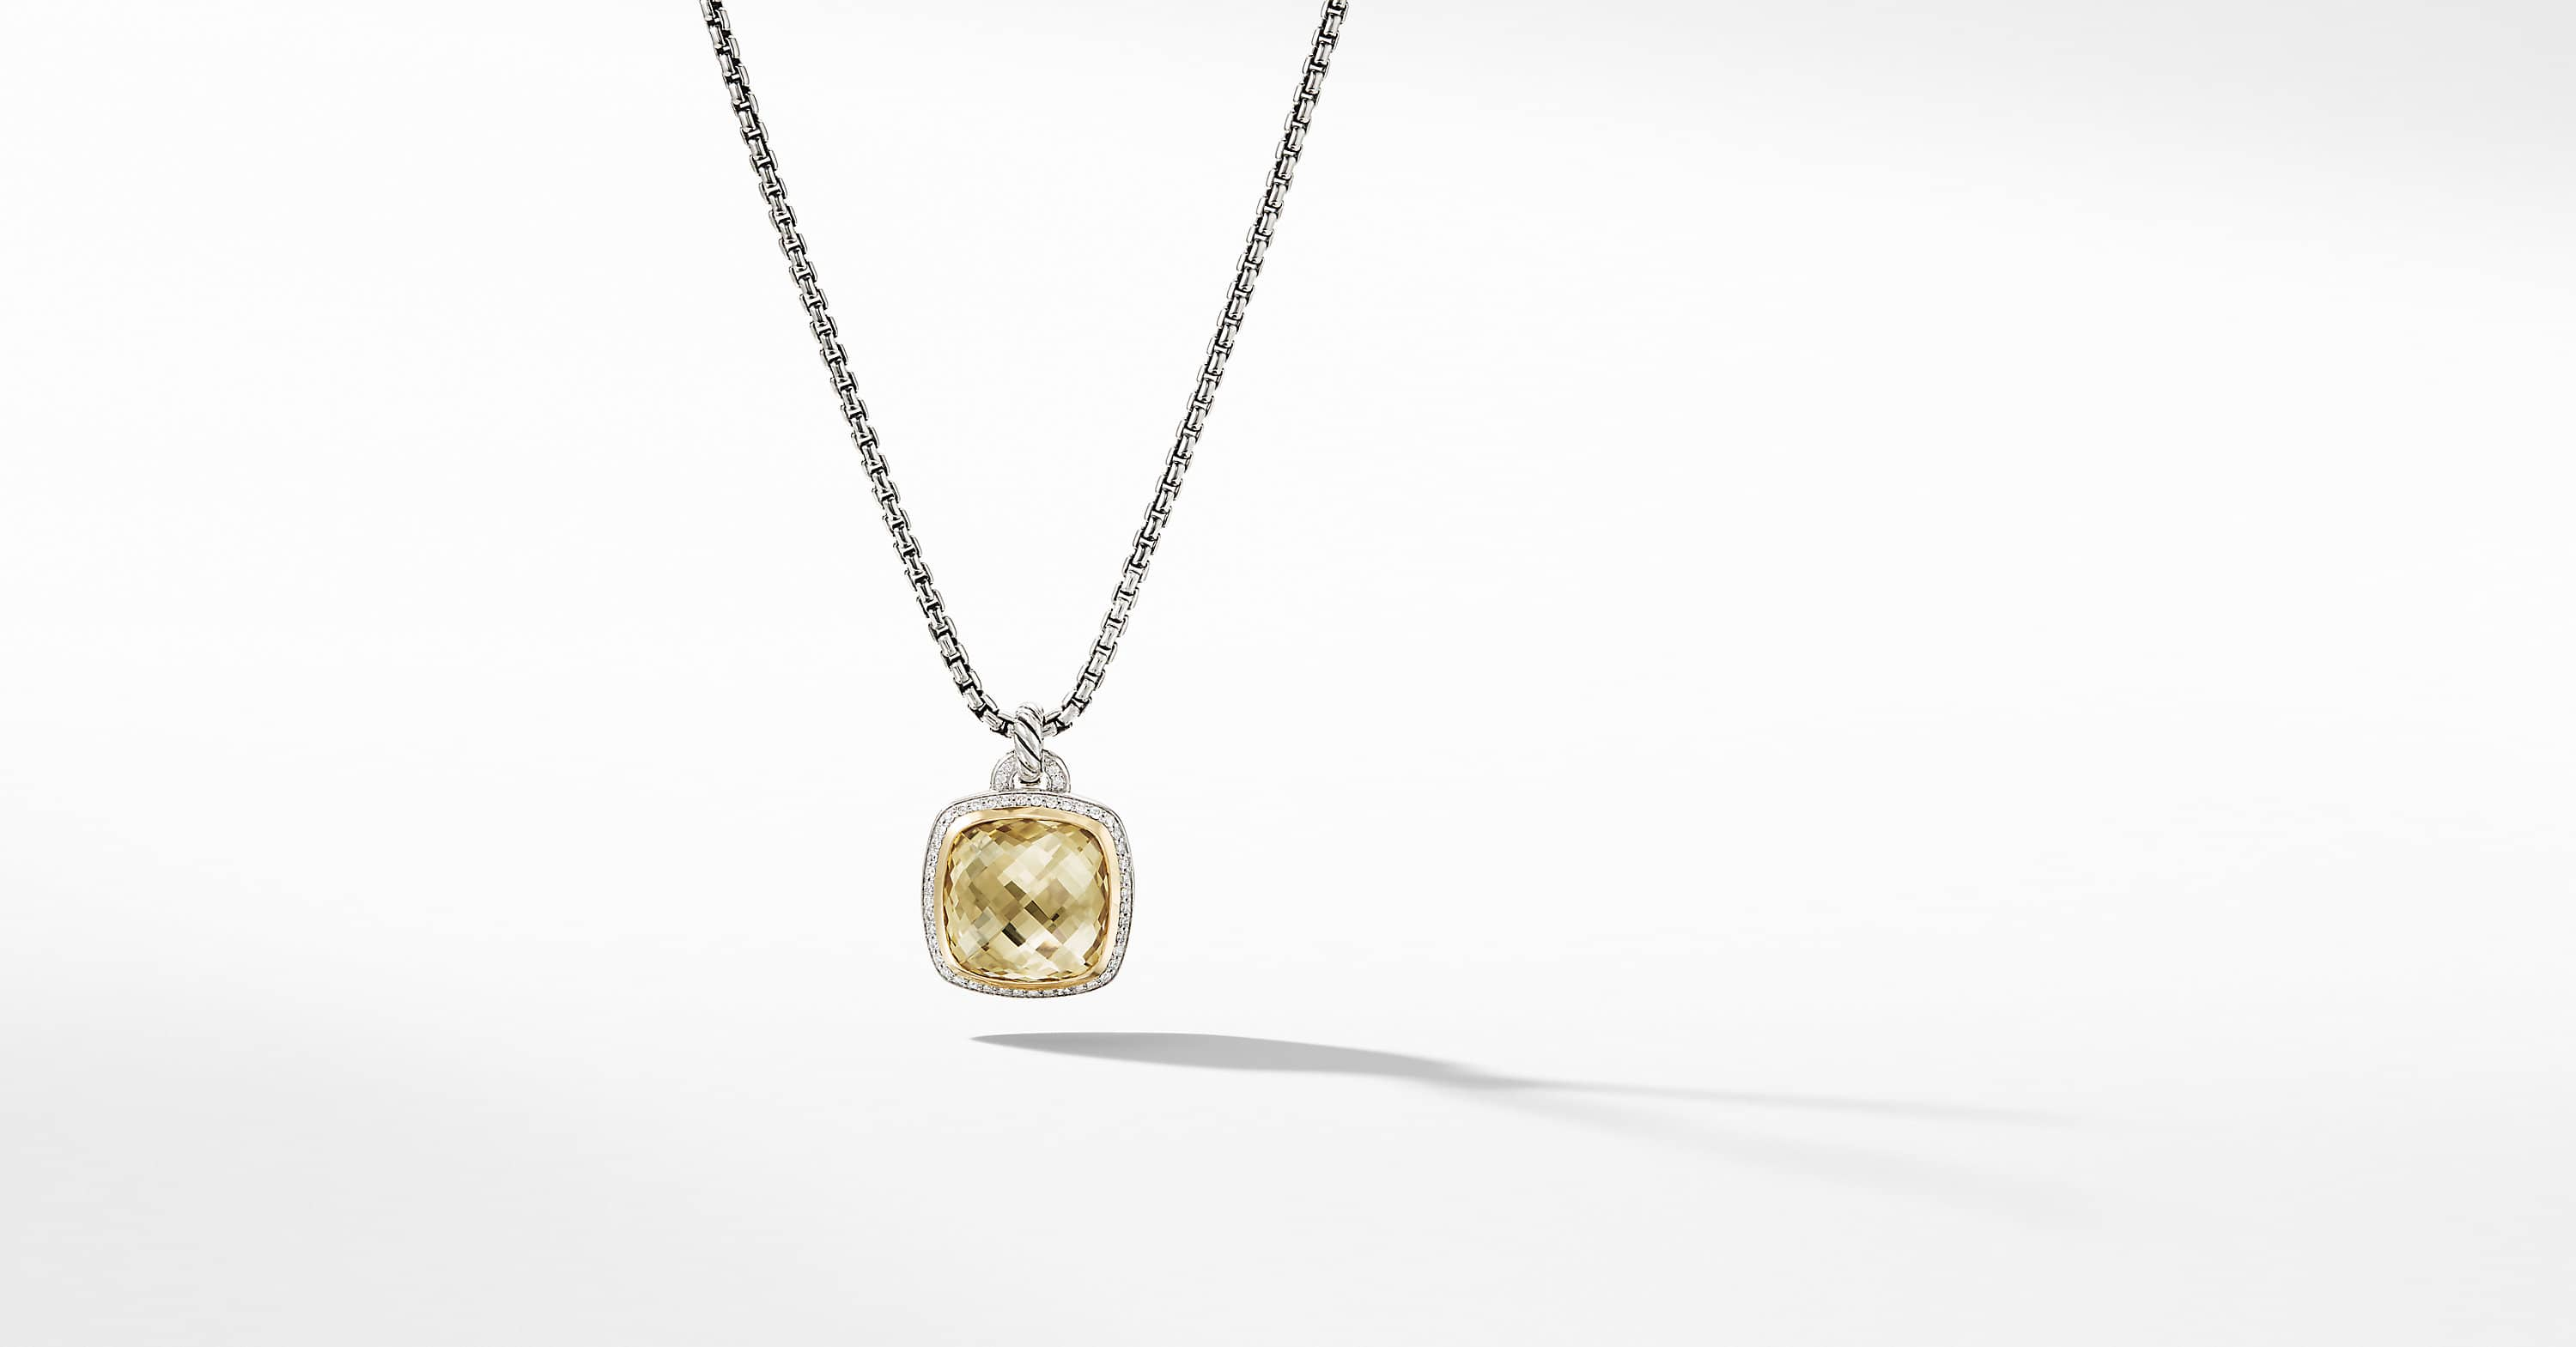 Albion Pendant with Diamonds and 18K Gold, 17mm